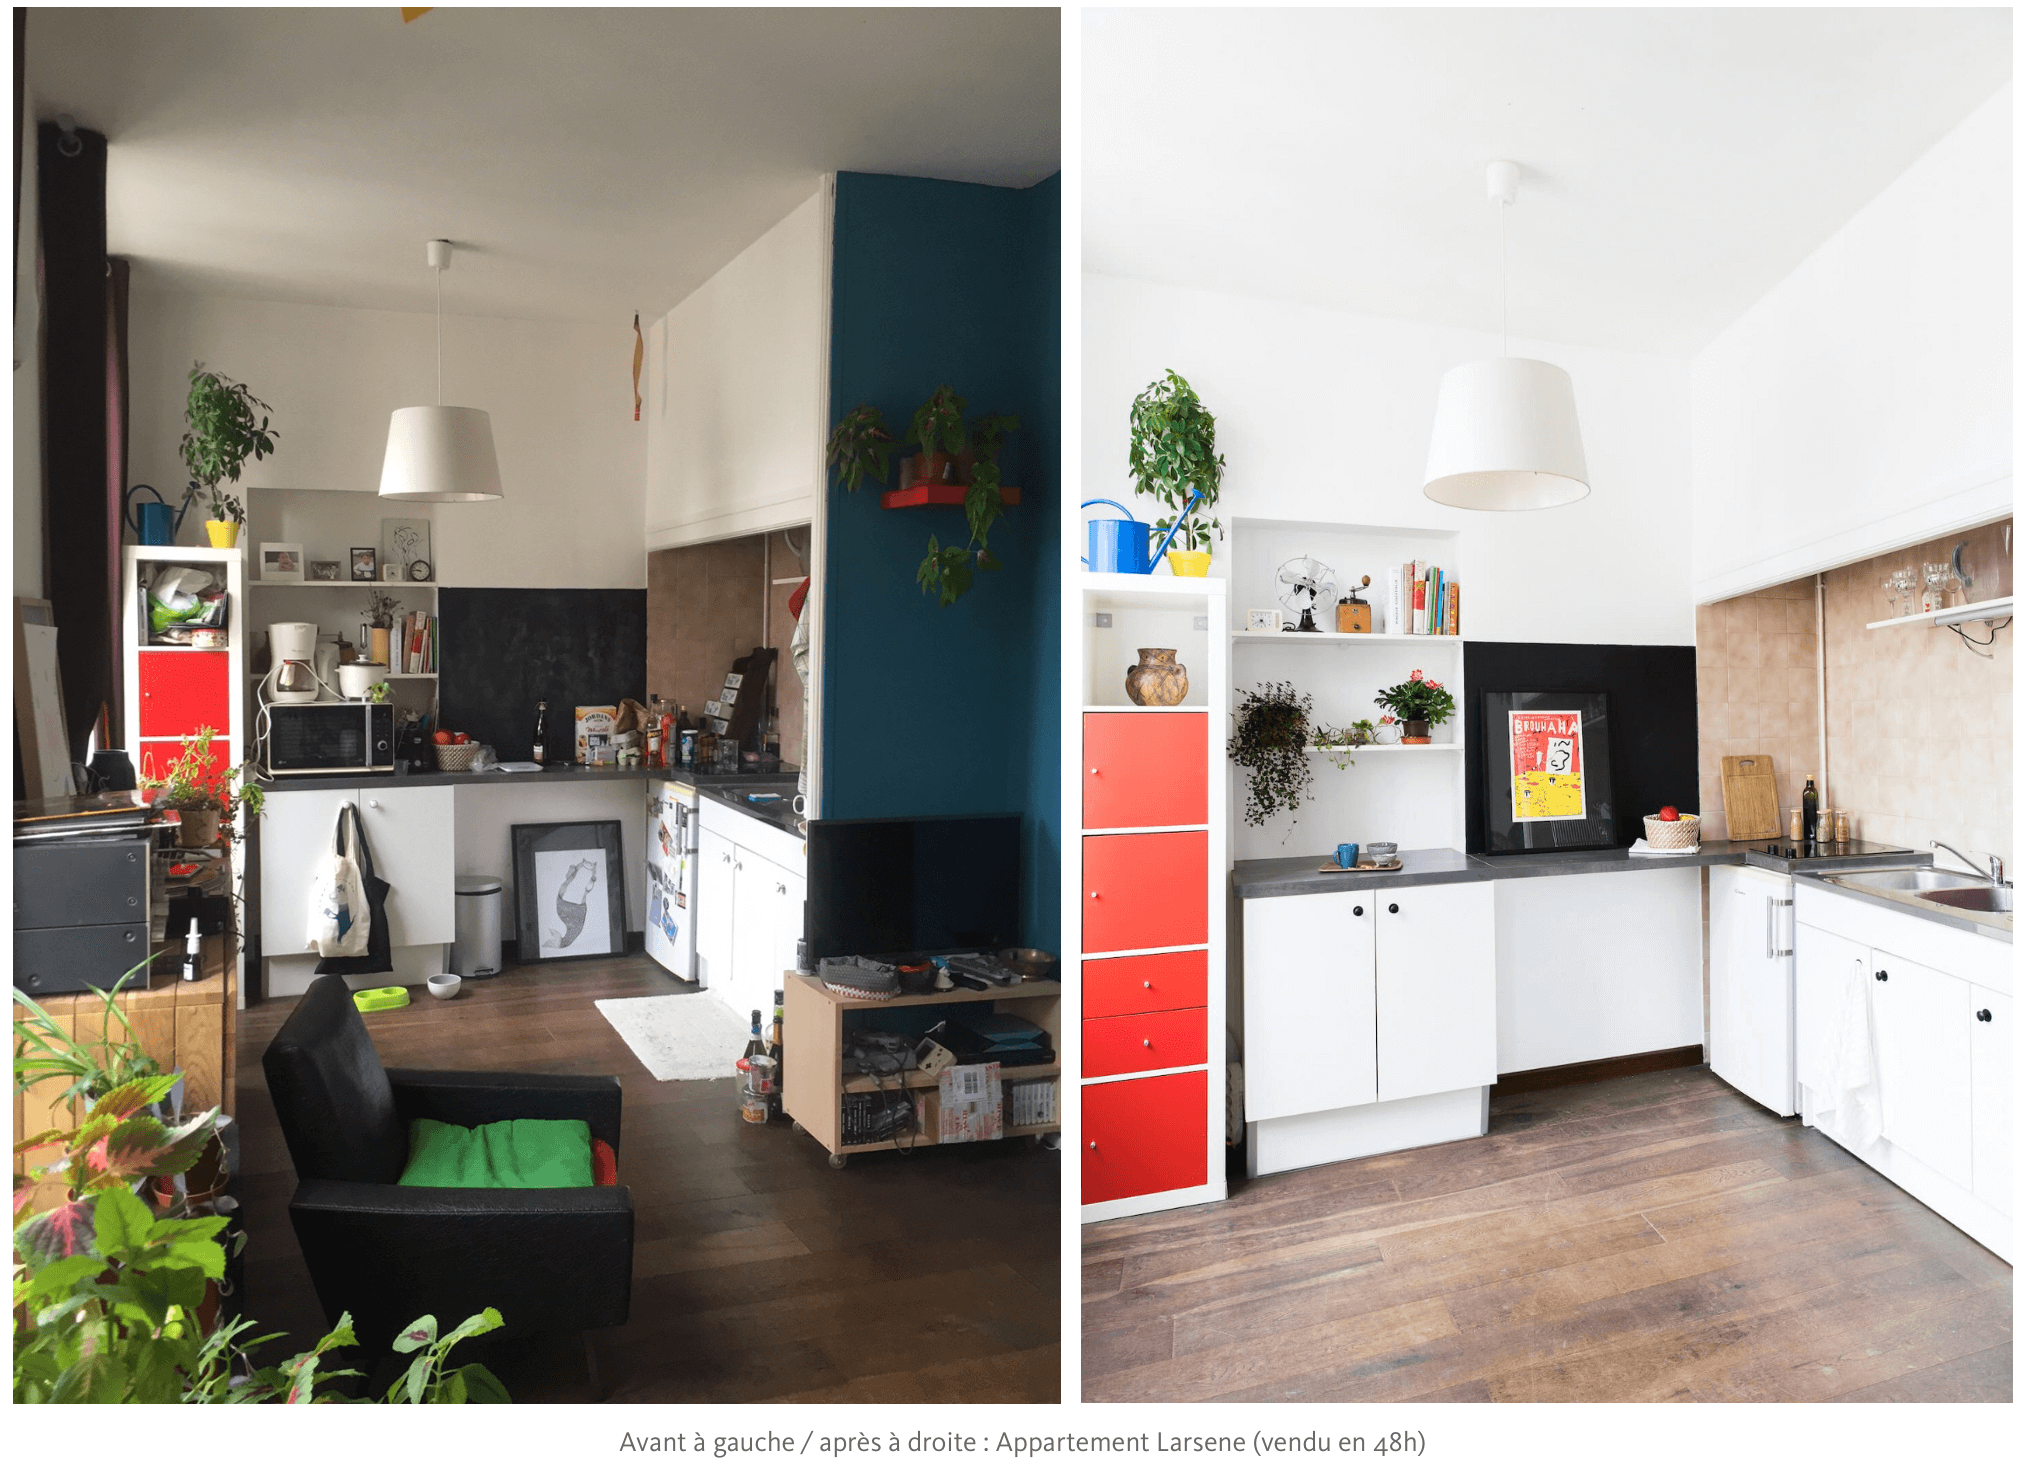 bumper-blog-news-immobilier-lyon-appartement-vente-achat-investir-homestaging-design-decoration-lifestyle-art-18.png